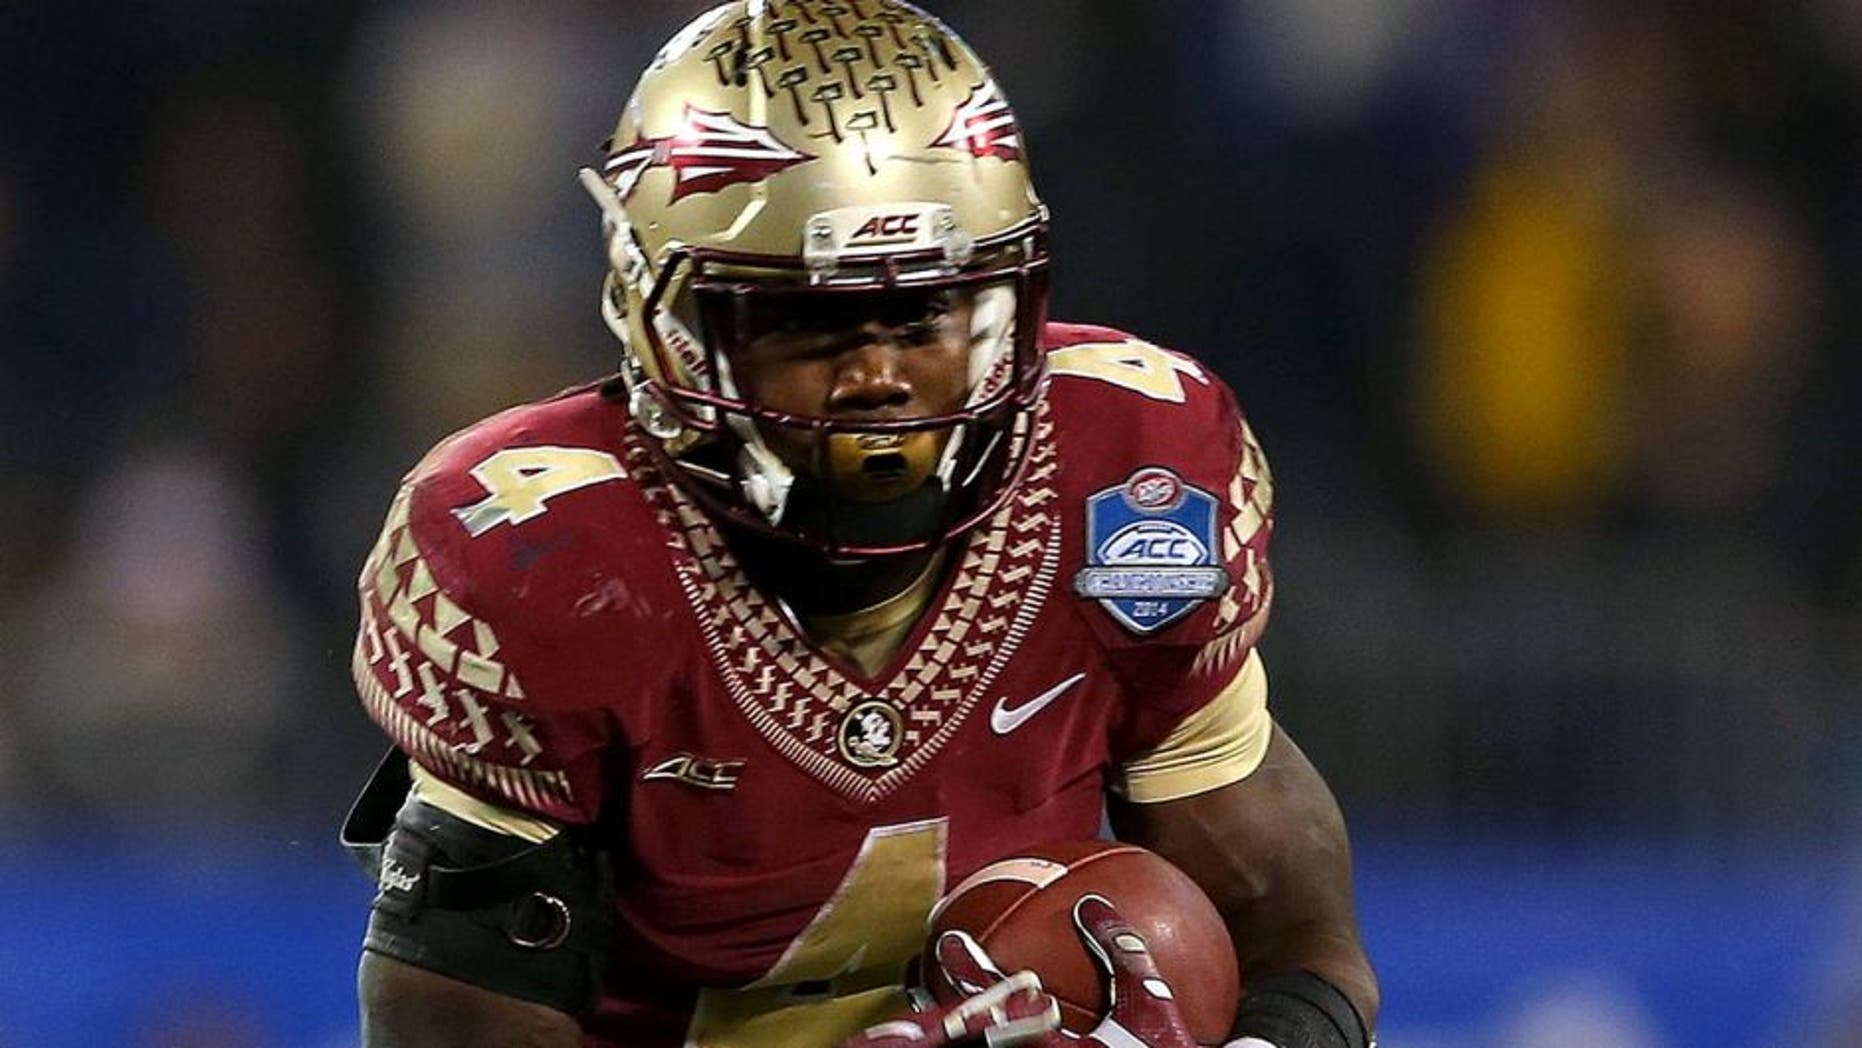 CHARLOTTE, NC - DECEMBER 06: Dalvin Cook #4 of the Florida State Seminoles runs the ball against the Georgia Tech Yellow Jackets in the 3rd quarter during the ACC Championship game on December 6, 2014 in Charlotte, North Carolina. (Photo by Mike Ehrmann/Getty Images)